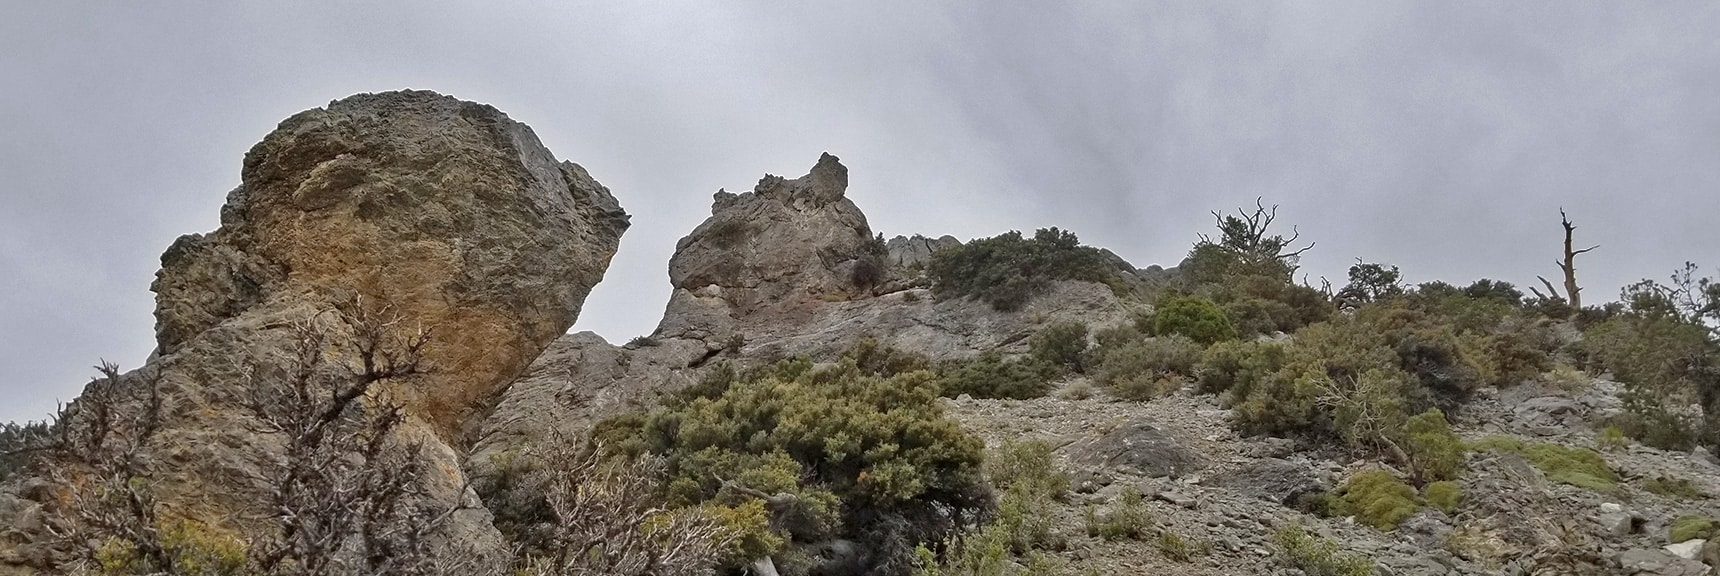 Approaching the 9,235ft High Point Bluff on Ridge   Sawmill Trail to McFarland Peak   Spring Mountains, Nevada